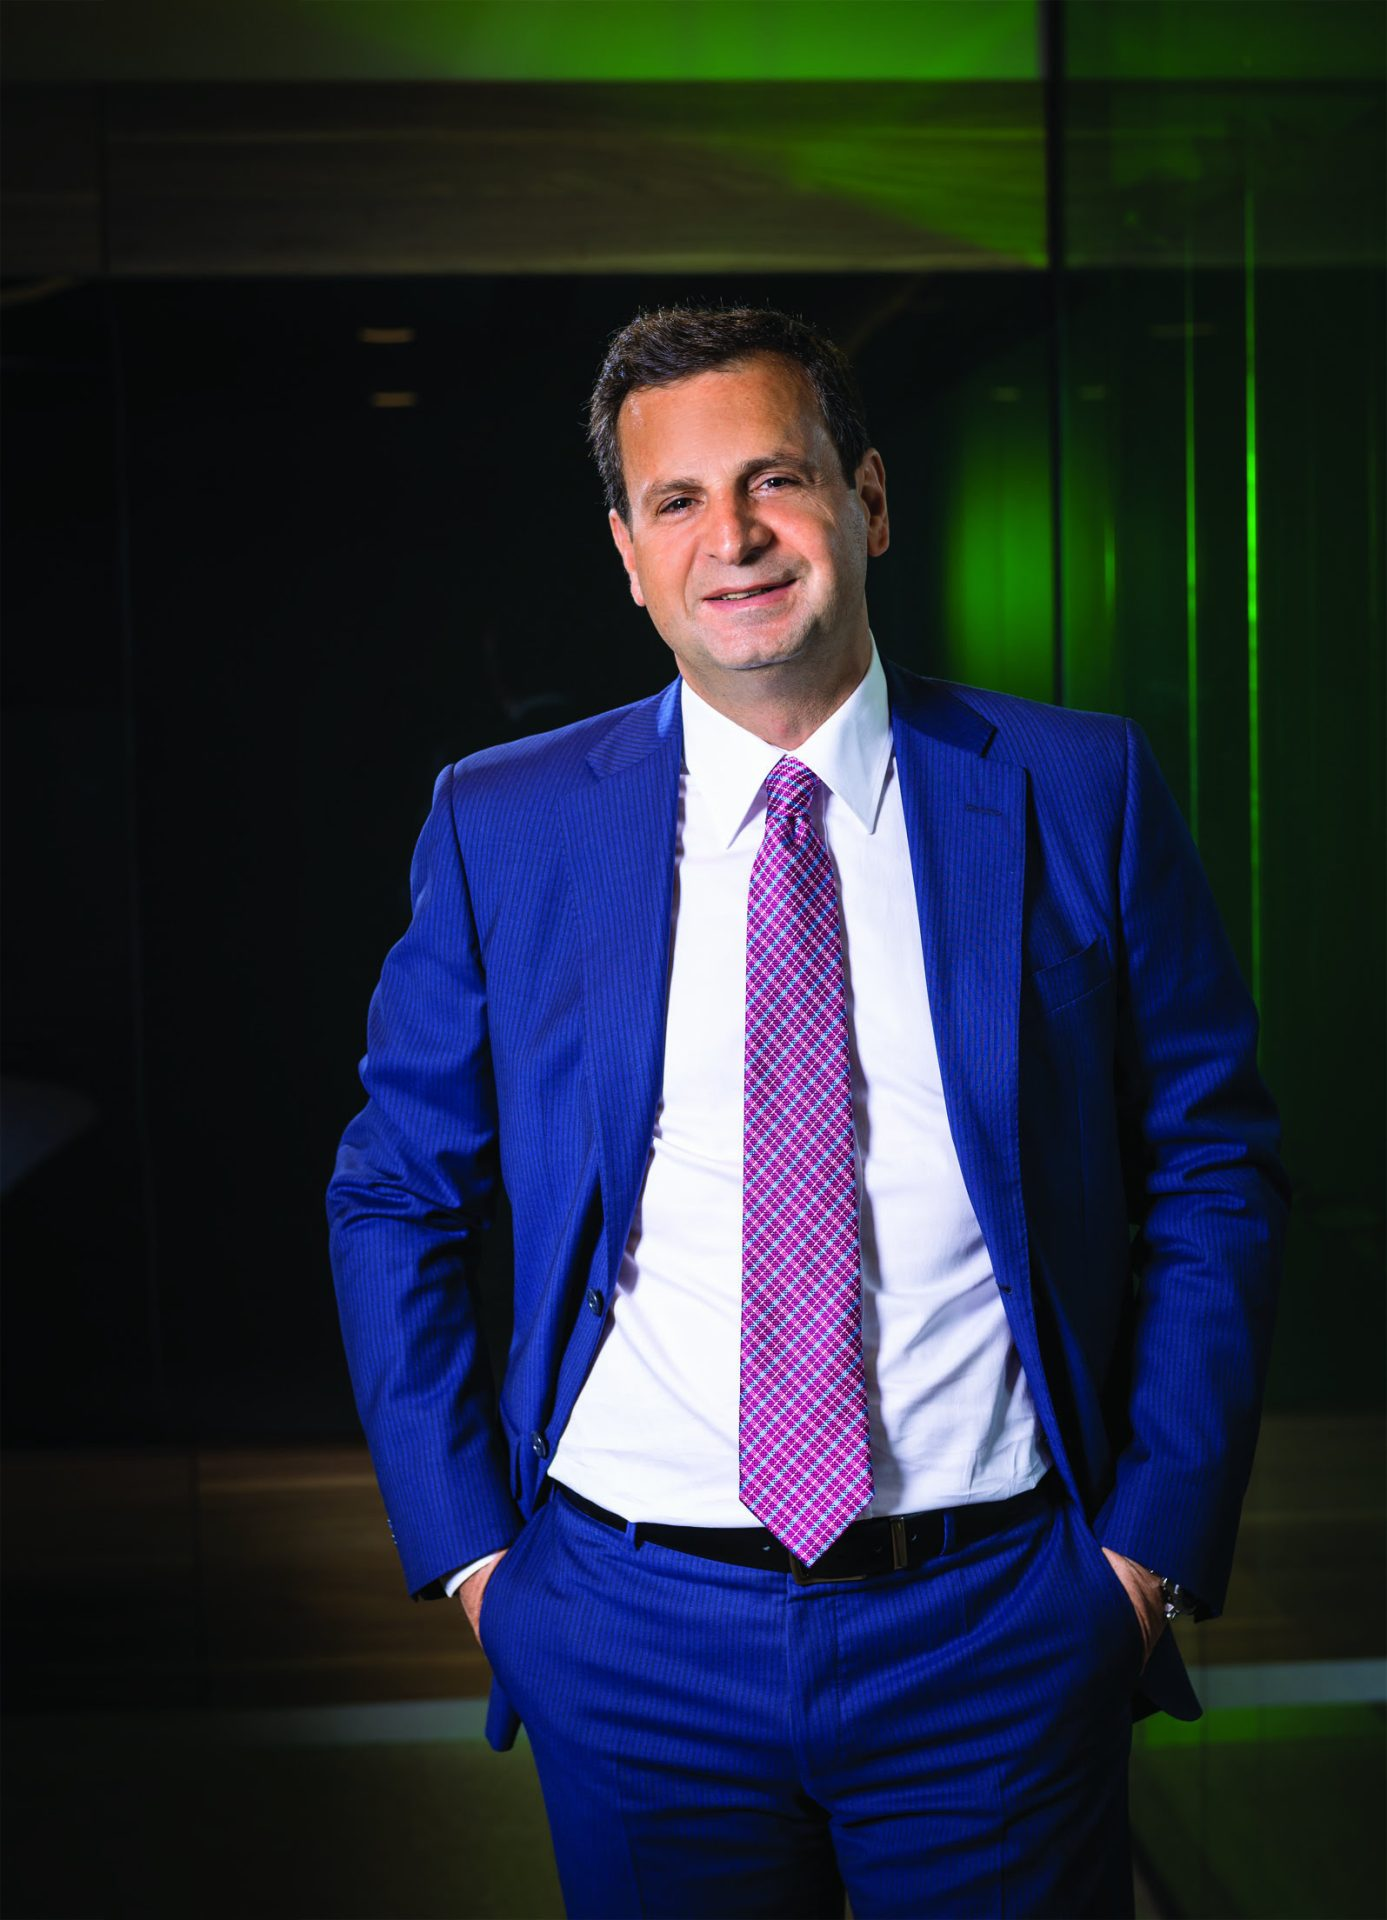 Ufuk Tandogan, CEO Garanti Bank Romania